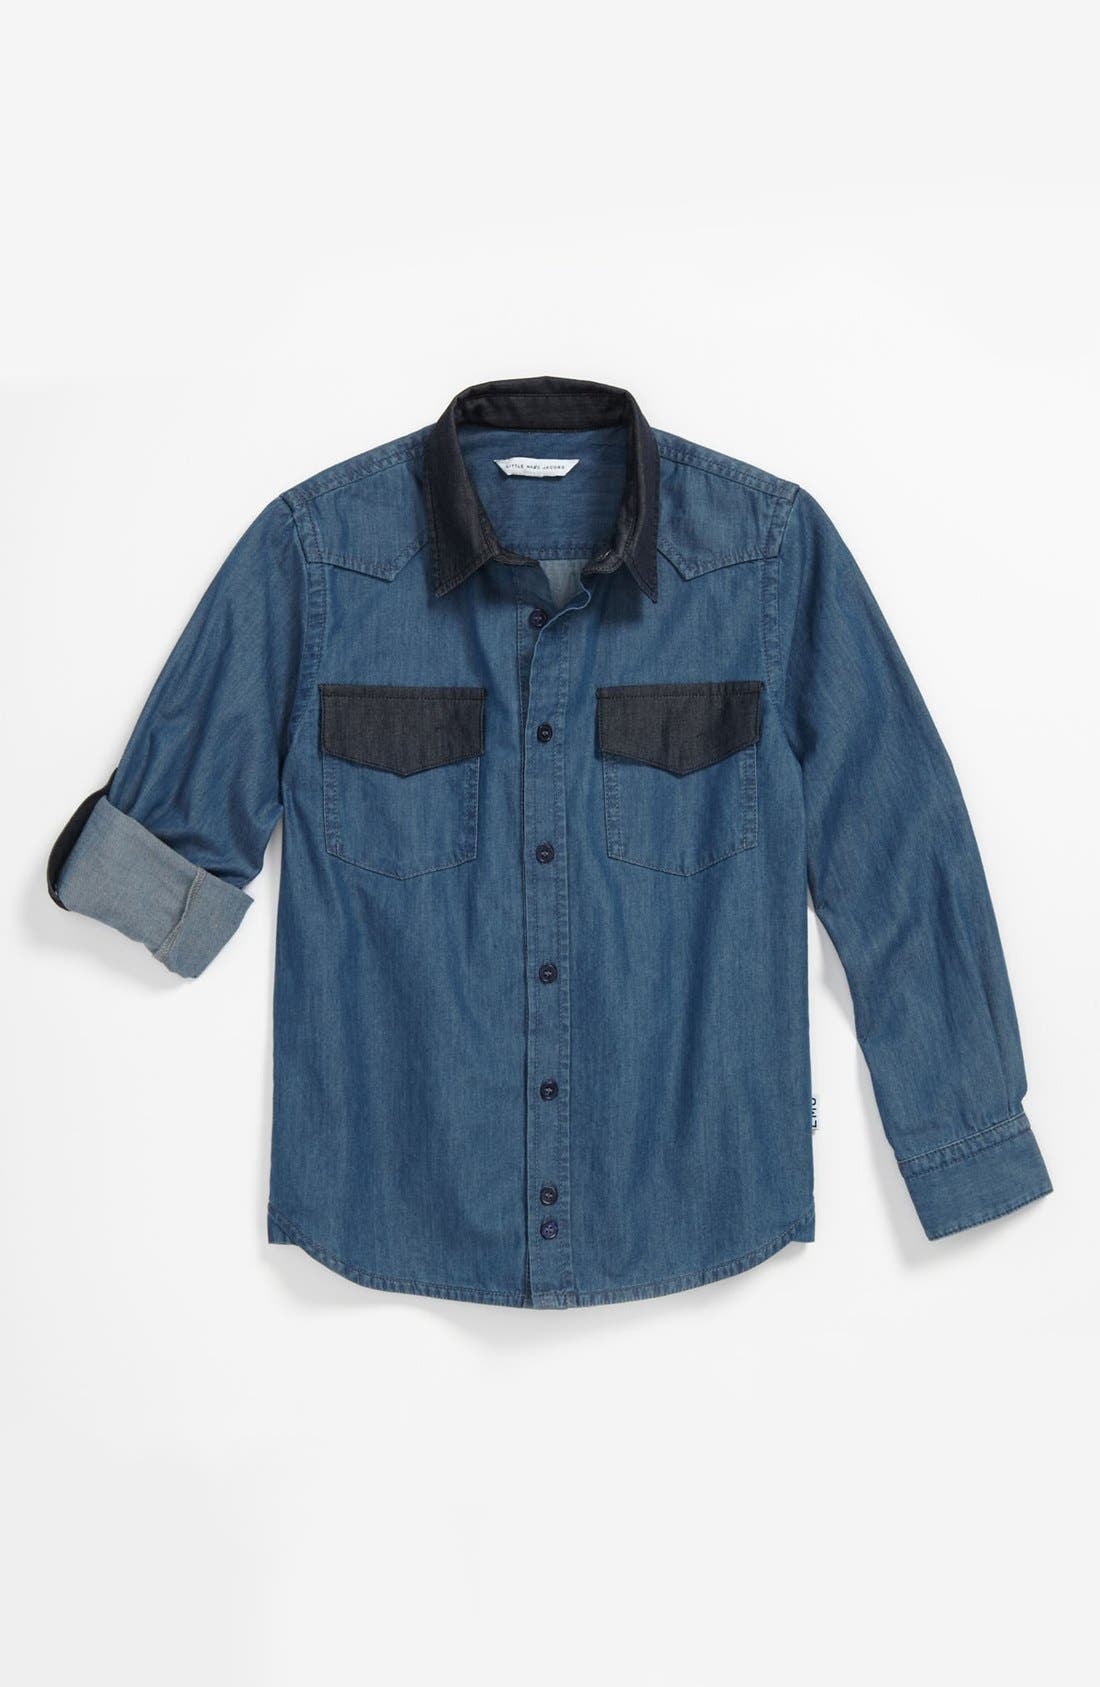 Alternate Image 1 Selected - LITTLE MARC JACOBS Chambray Shirt (Big Boys)